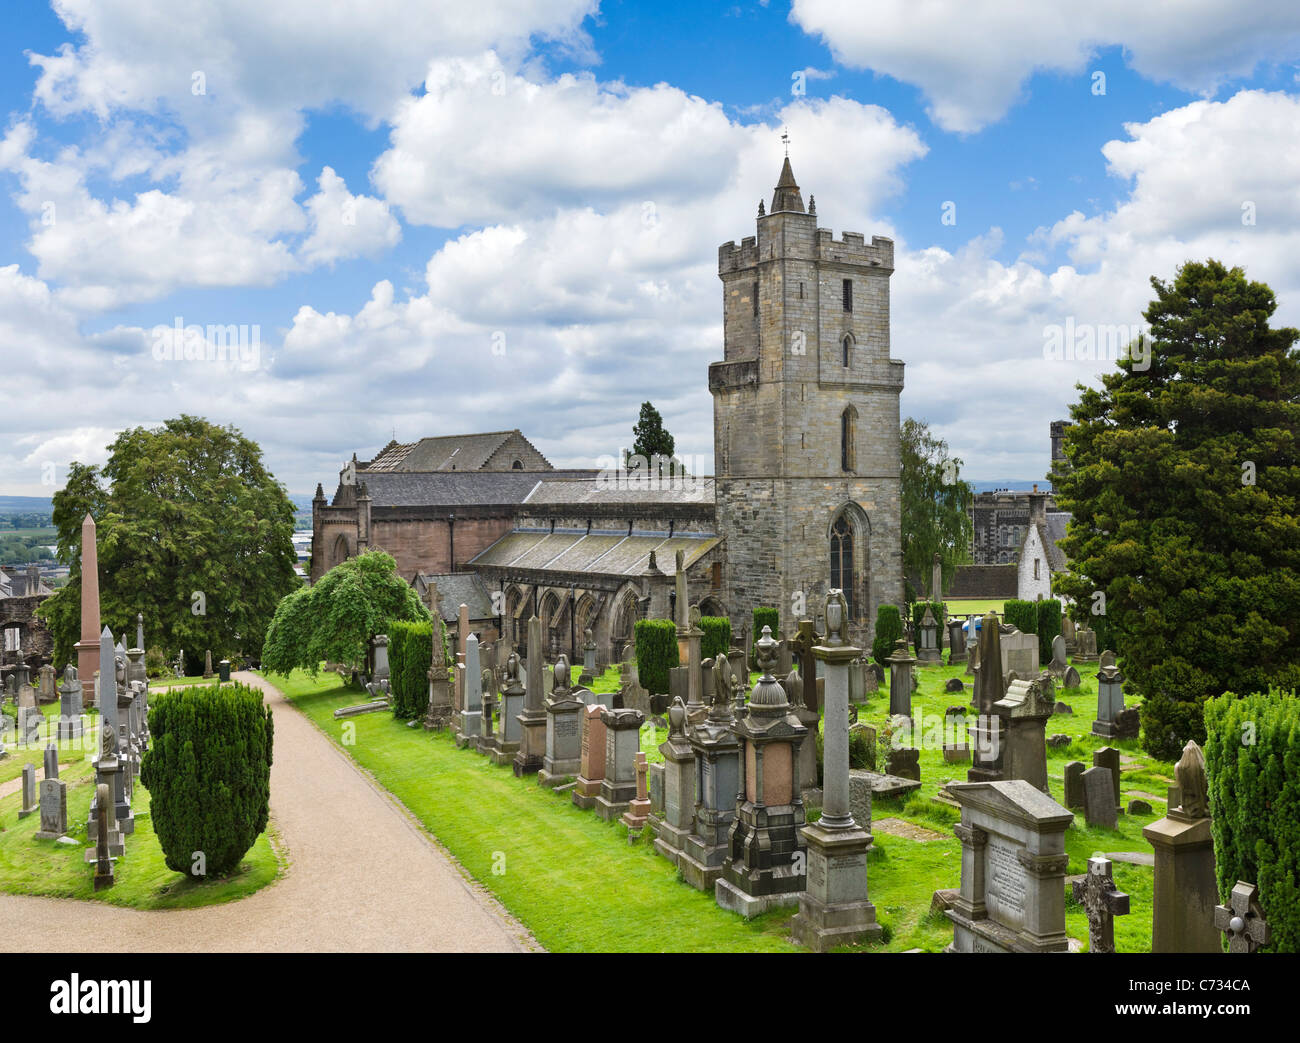 Church of the Holy Rude, Stirling, Scotland, UK - Stock Image